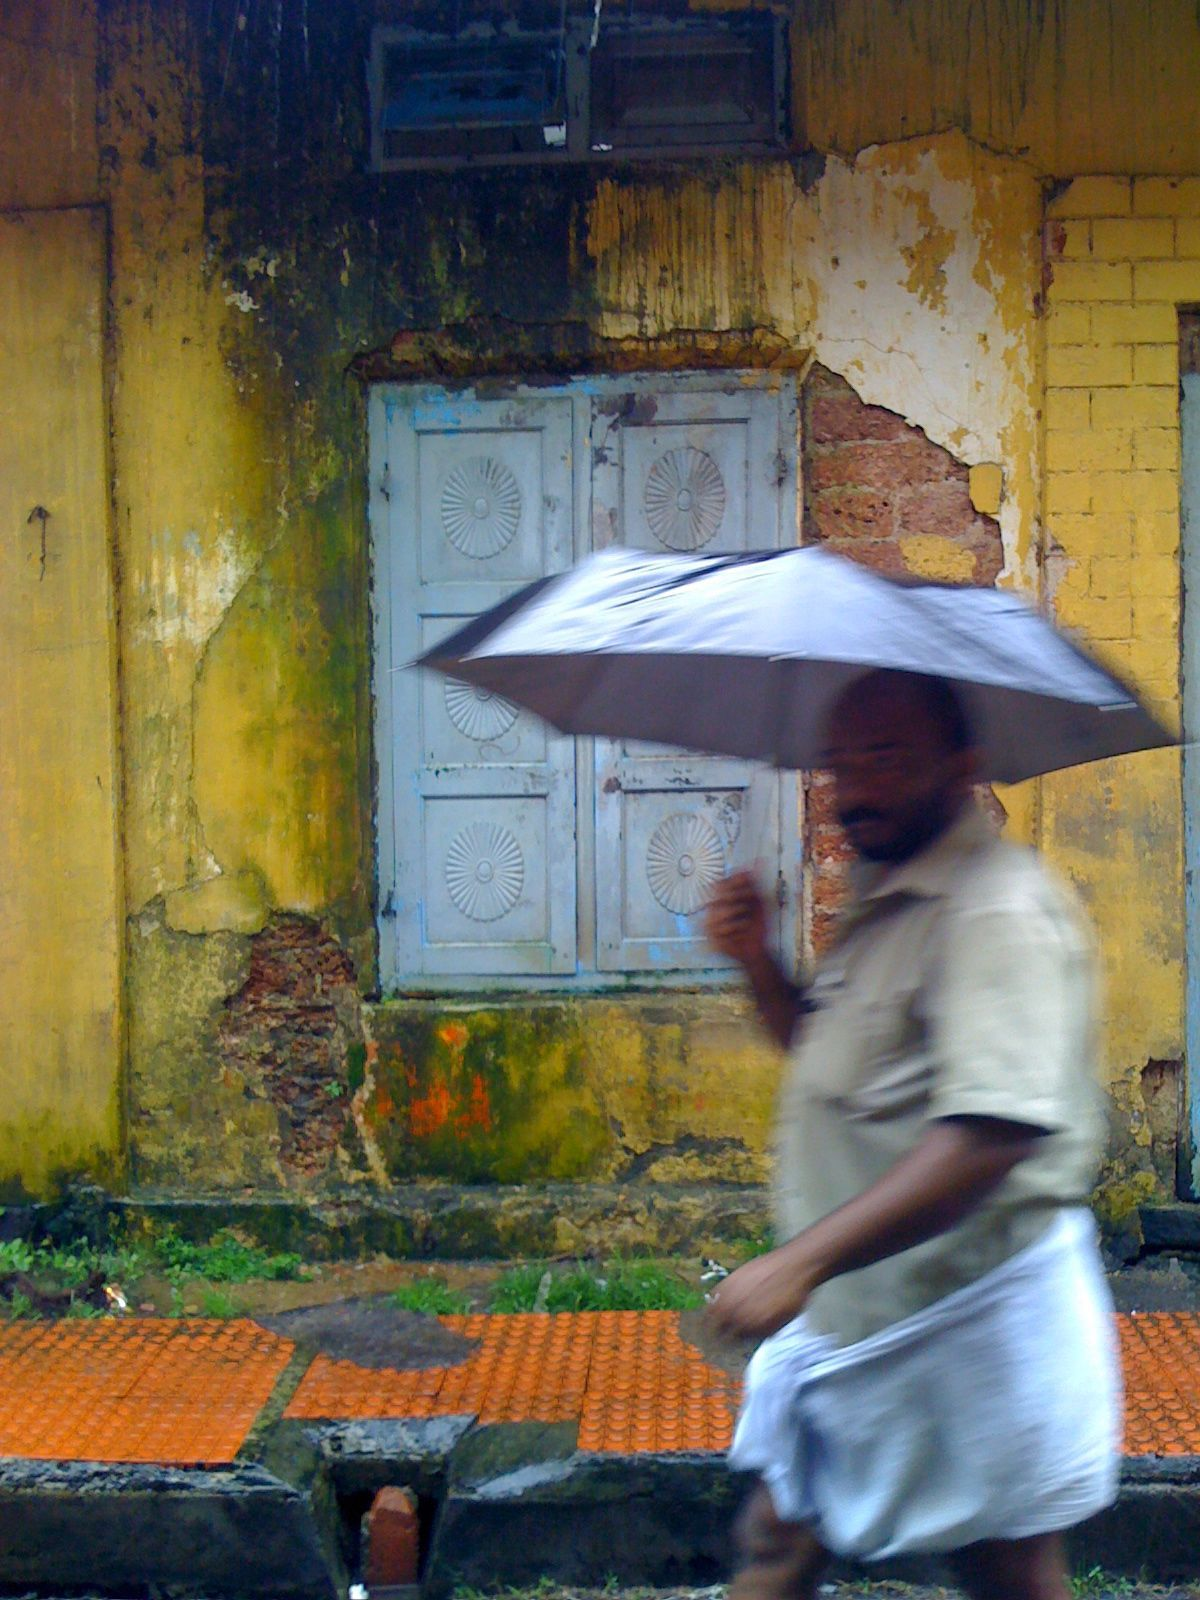 Monsoon rain in Fort Kochi, Kerala, India.